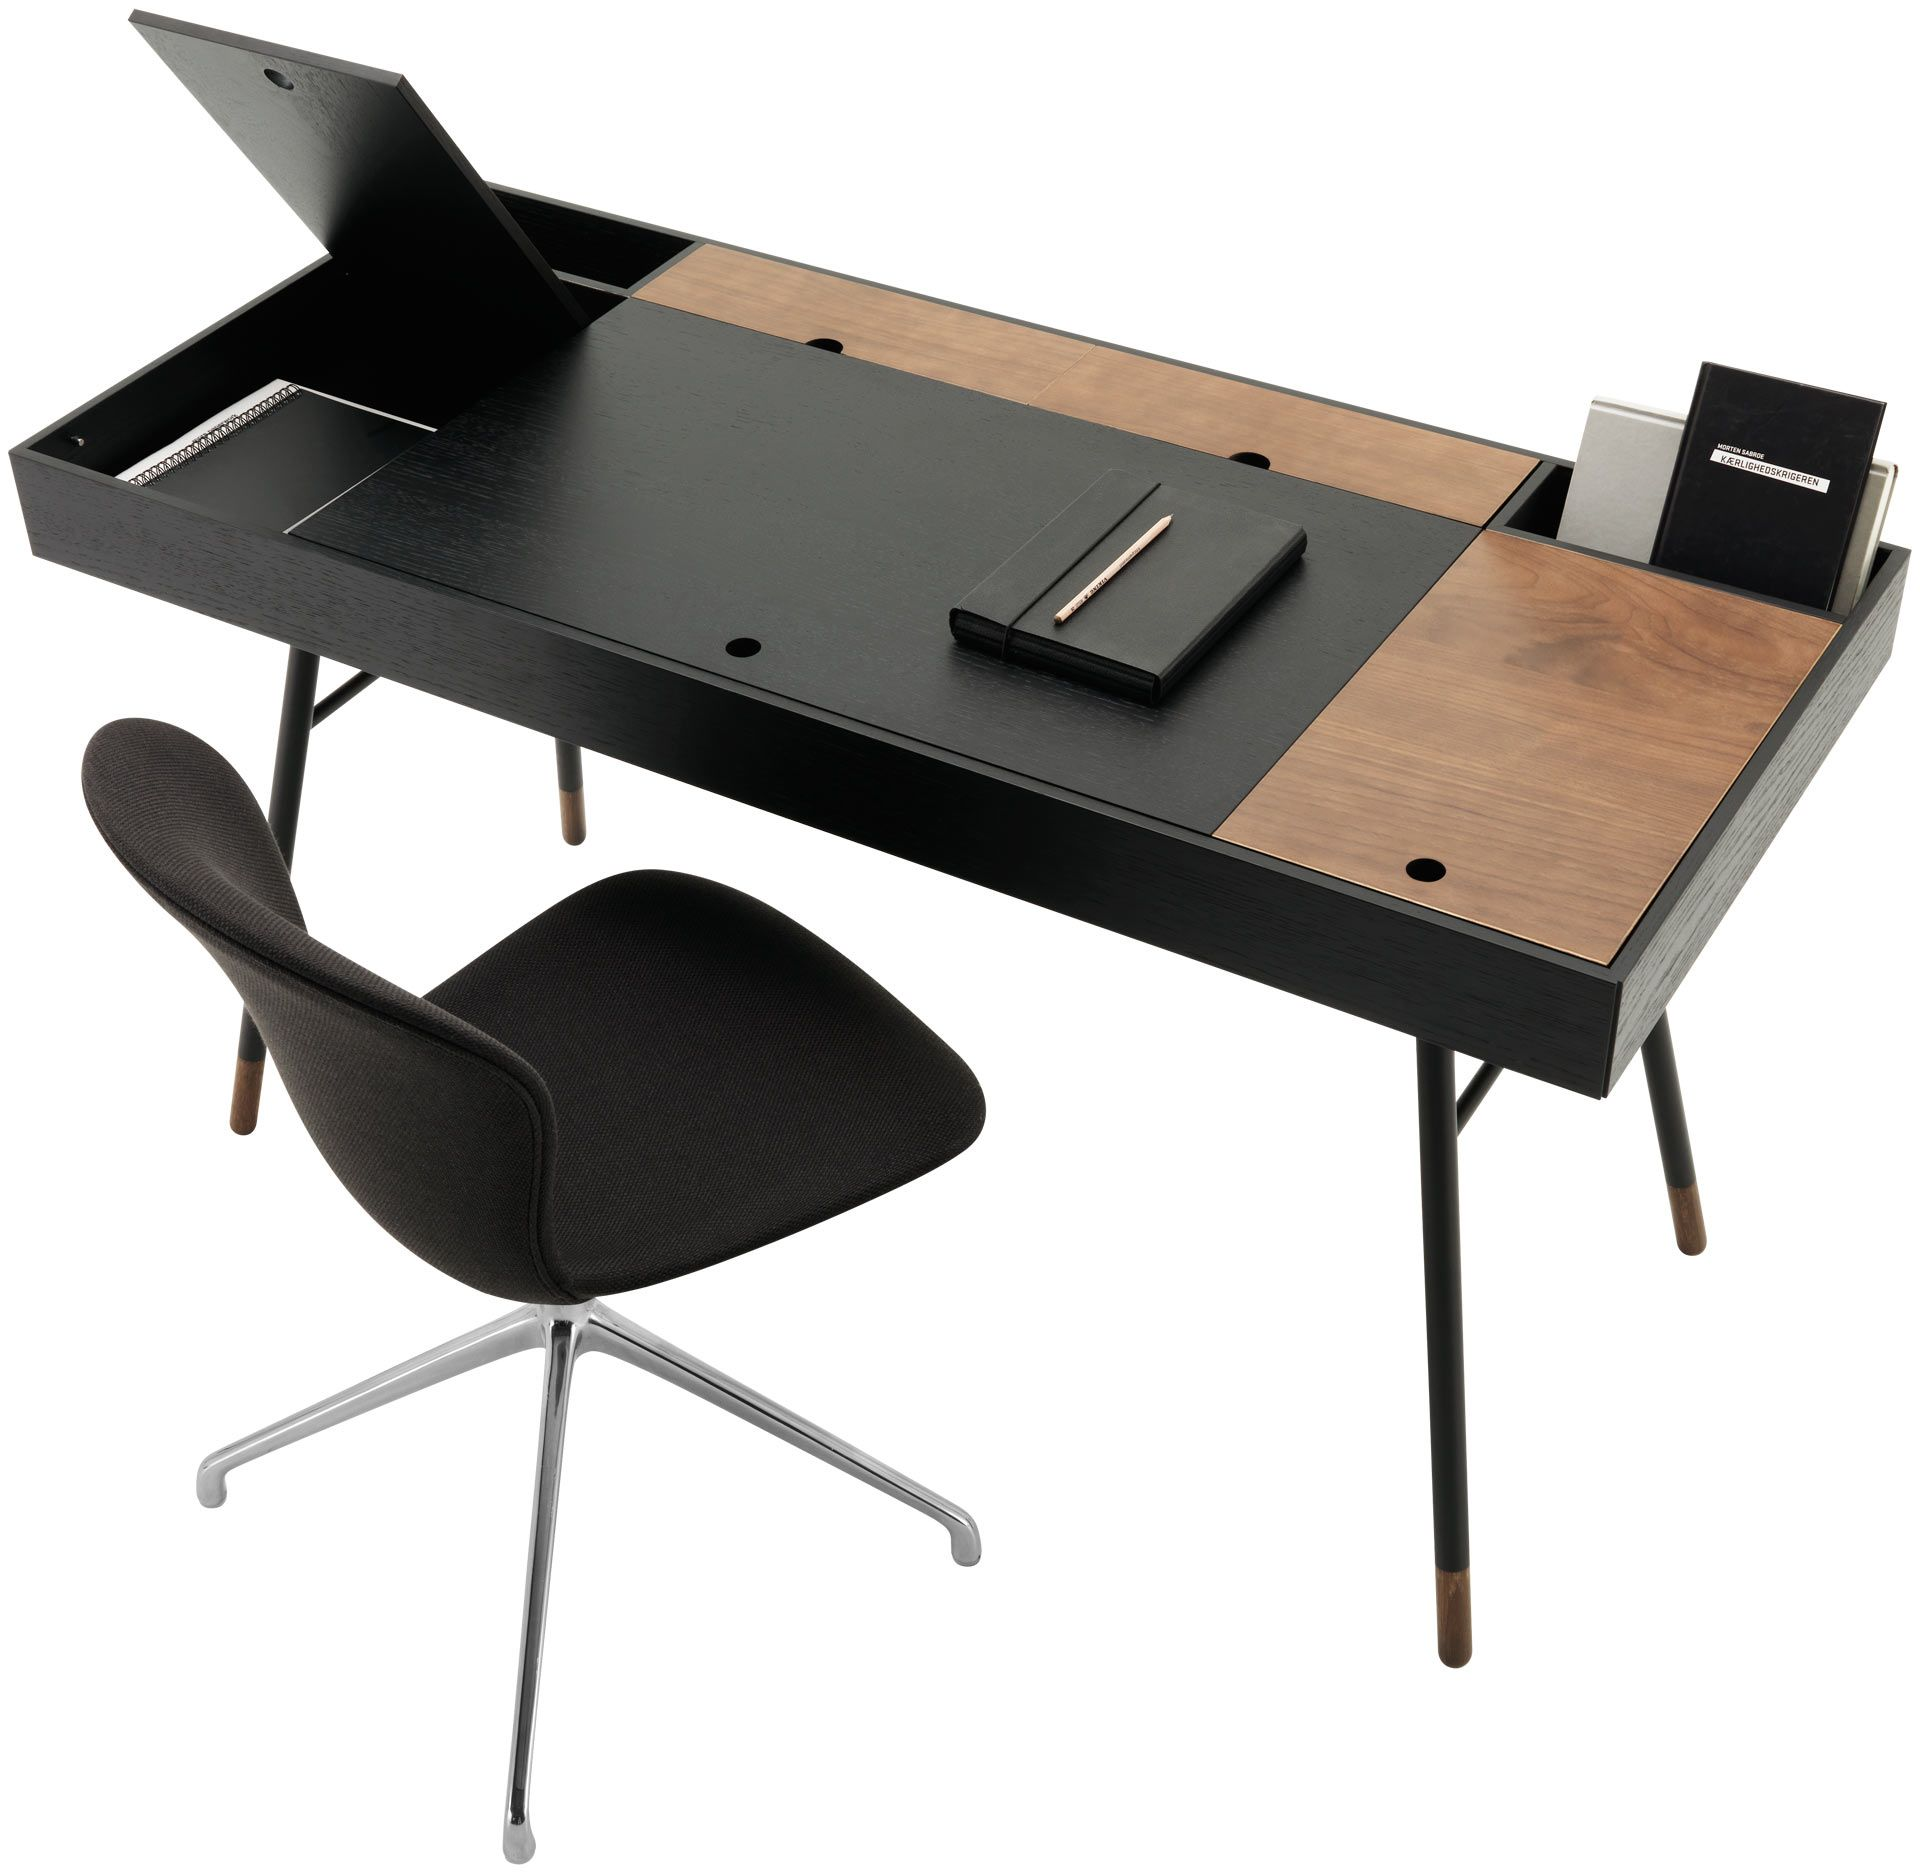 stylish office furniture boconcept stores throughout the uk furniture pinterest. Black Bedroom Furniture Sets. Home Design Ideas